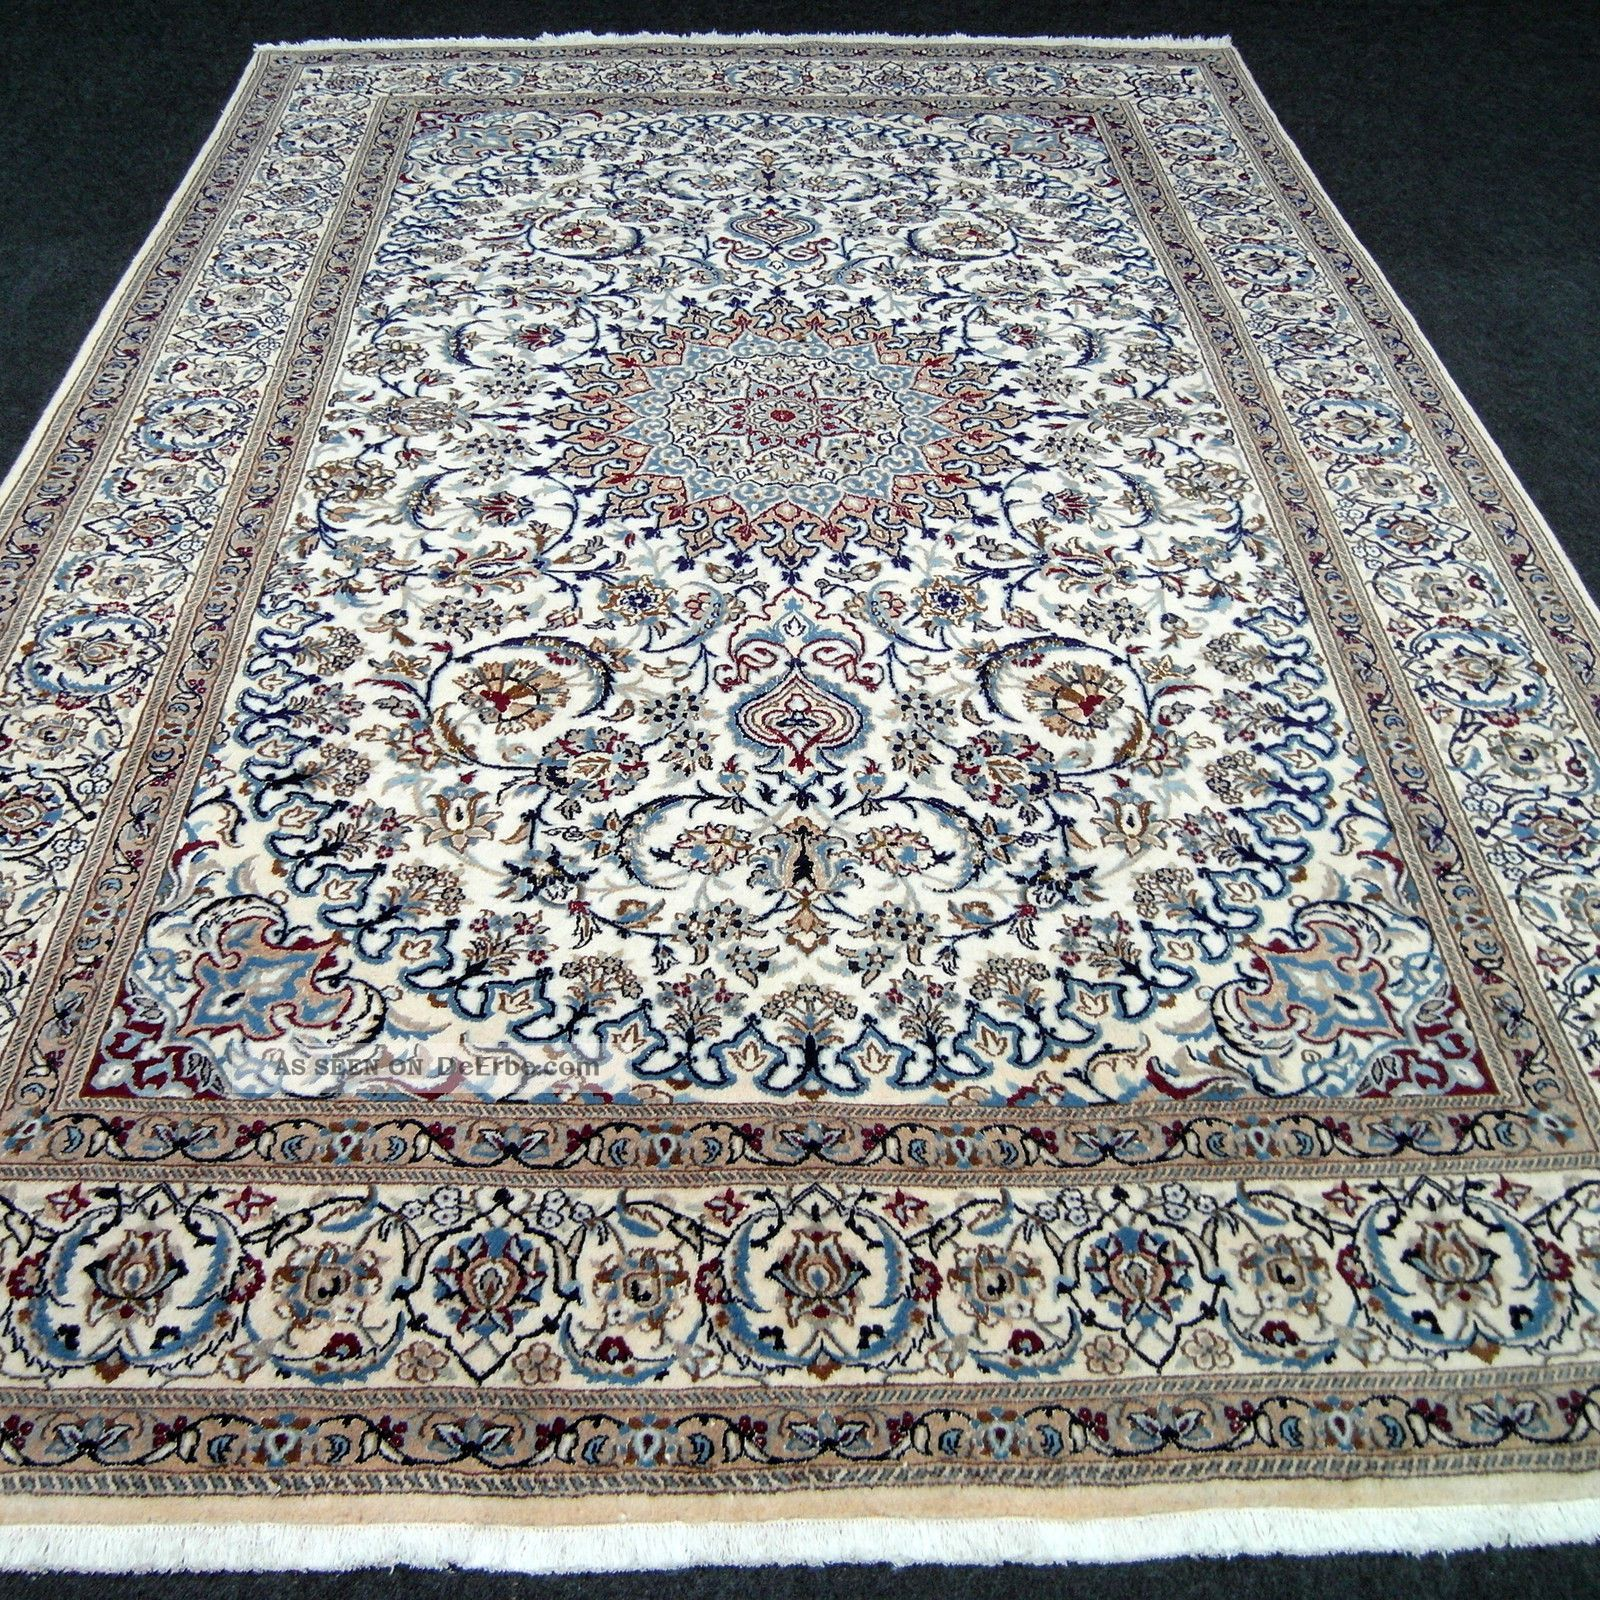 feiner orient teppich beige blau 364 x 249 cm perserteppich seide silk rug tapis. Black Bedroom Furniture Sets. Home Design Ideas